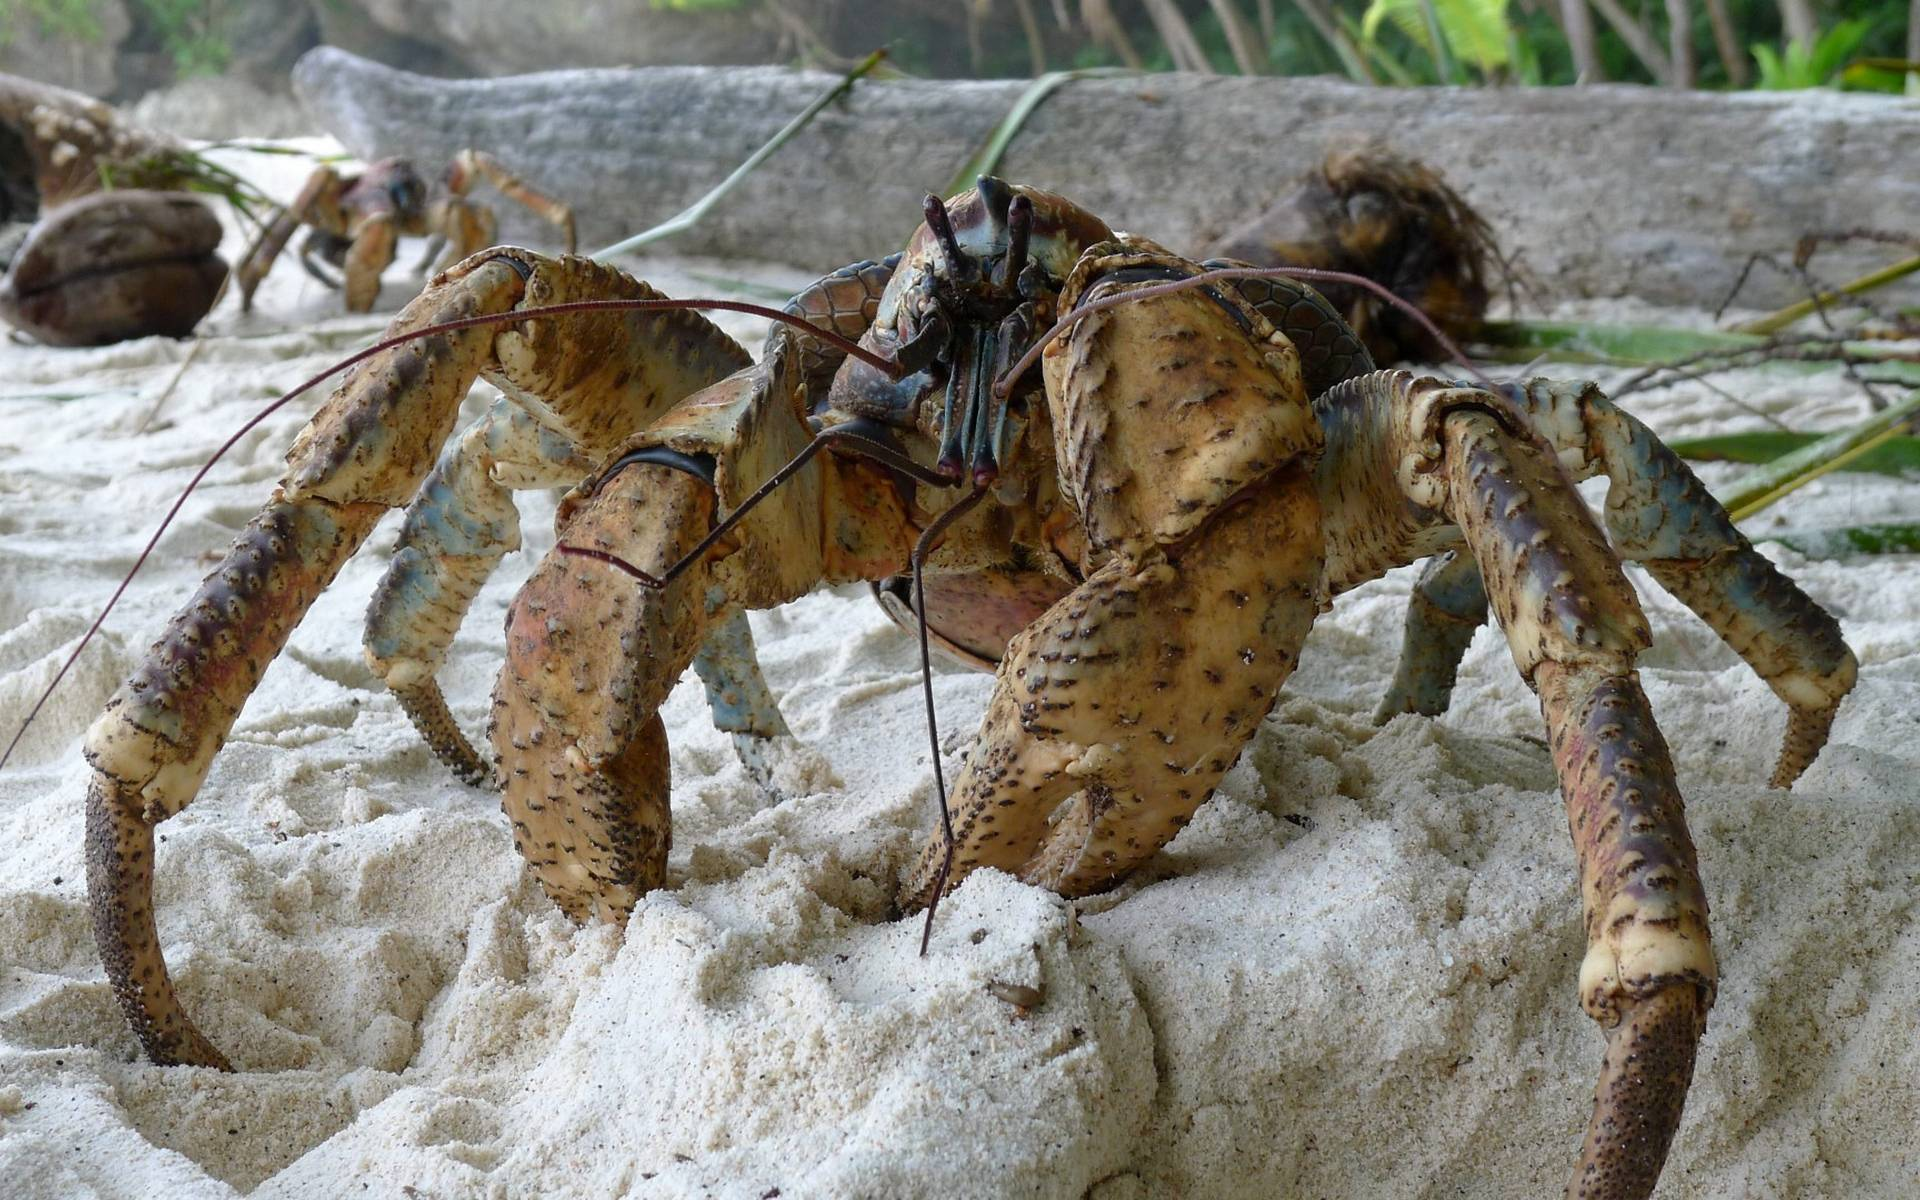 Lice: Causes, Symptoms and Diagnosis - Healthline Pictures of human crabs